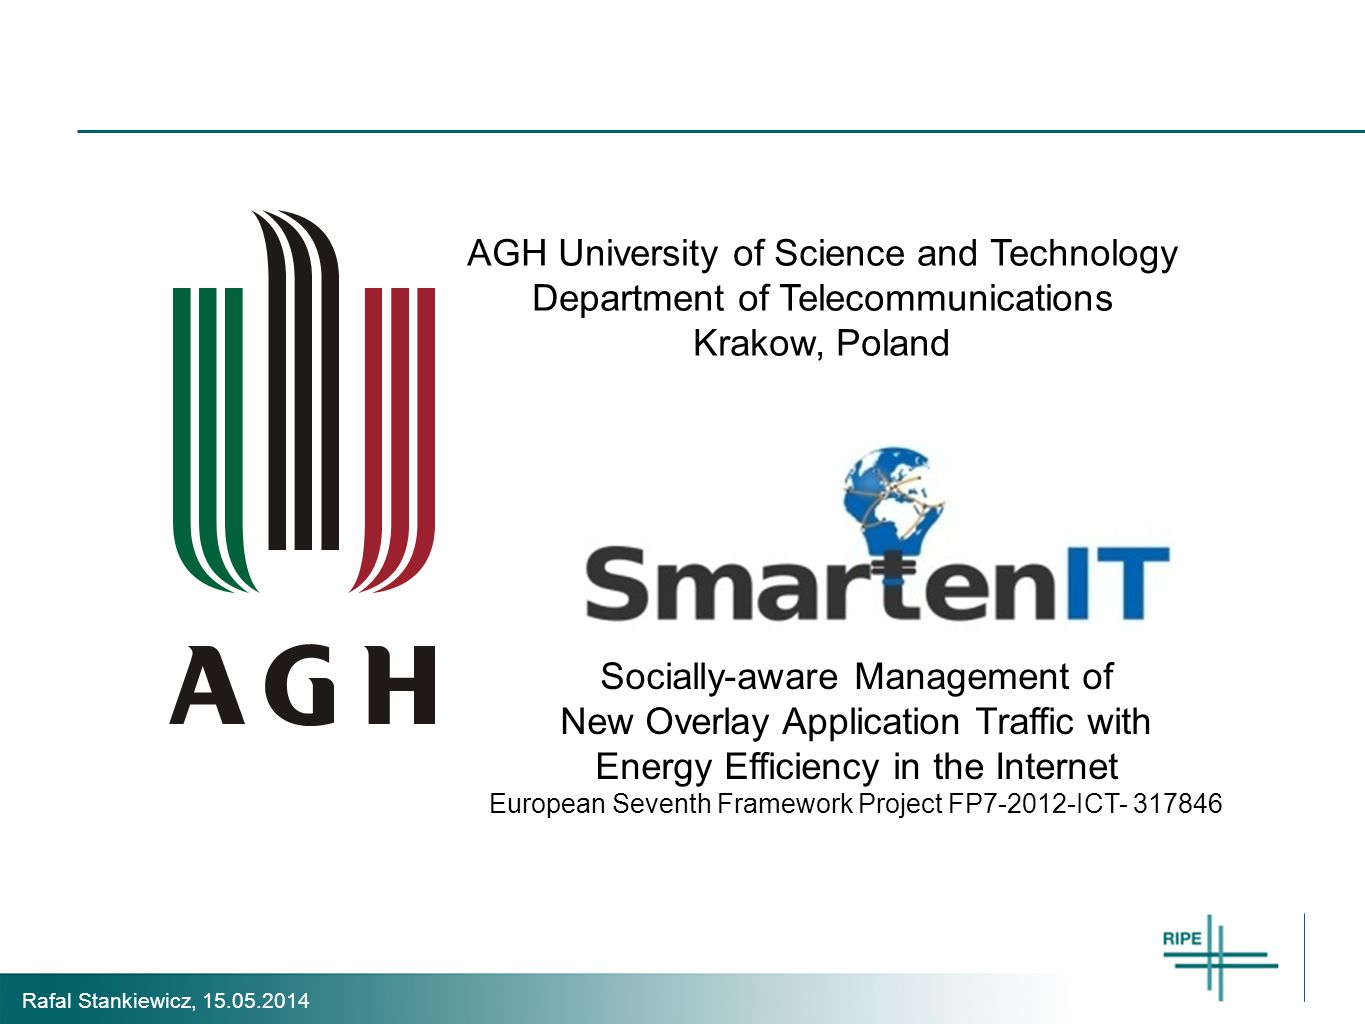 Rafal Stankiewicz, 15.05.2014 Socially-aware Management of New Overlay Application Traffic with Energy Efficiency in the Internet European Seventh Framework Project FP7-2012-ICT- 317846 AGH University of Science and Technology Department of Telecommunications Krakow, Poland